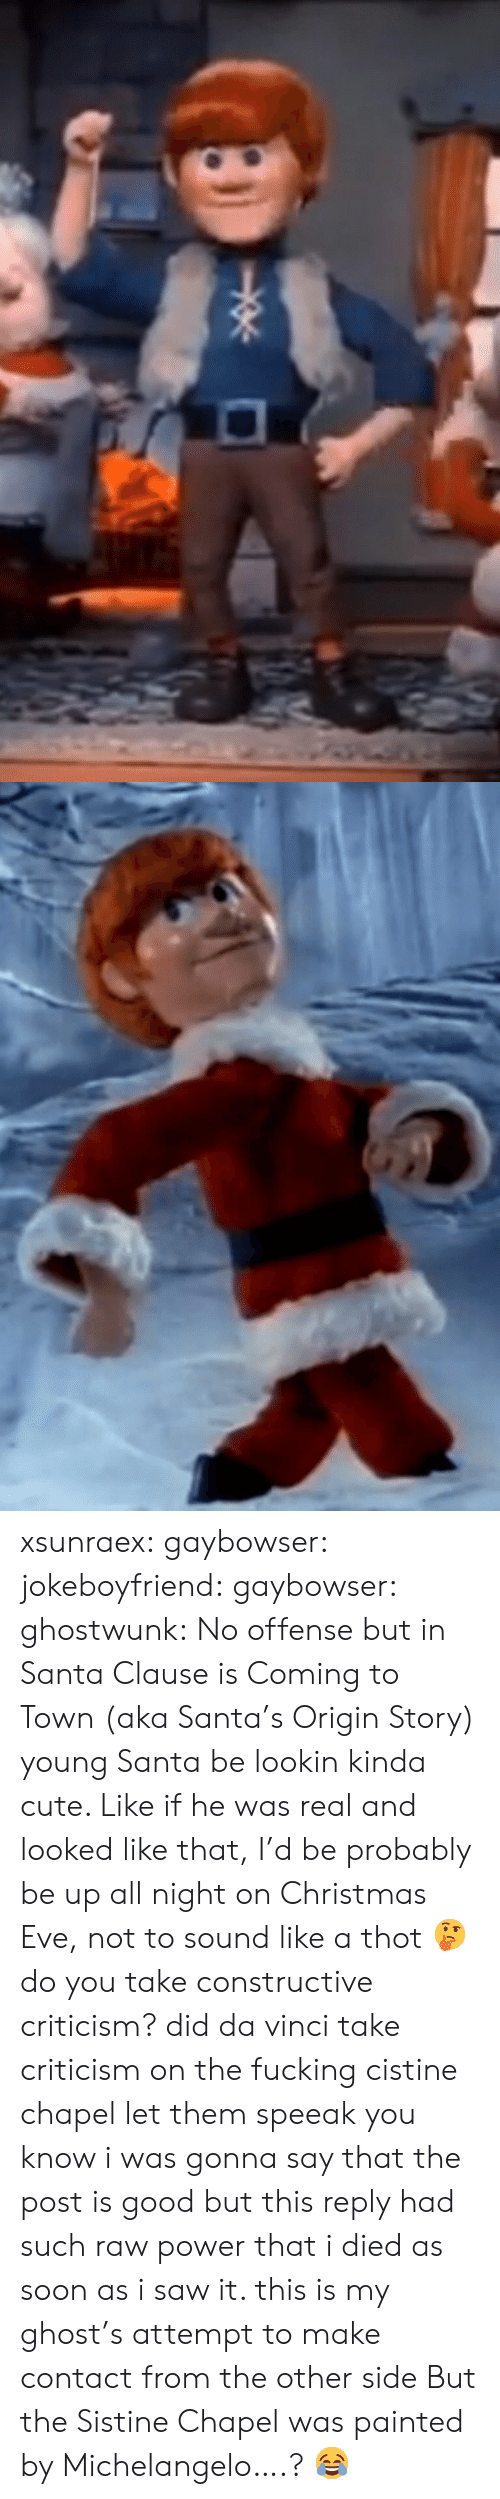 origin story: xsunraex:  gaybowser: jokeboyfriend:  gaybowser:  ghostwunk: No offense but in Santa Clause is Coming to Town (aka Santa's Origin Story) young Santa be lookin kinda cute. Like if he was real and looked like that, I'd be probably be up all night on Christmas Eve, not to sound like a thot 🤔 do you take constructive criticism?  did da vinci take criticism on the fucking cistine chapel let them speeak  you know i was gonna say that the post is good but this reply had such raw power that i died as soon as i saw it. this is my ghost's attempt to make contact from the other side   But the Sistine Chapel was painted by Michelangelo….? 😂